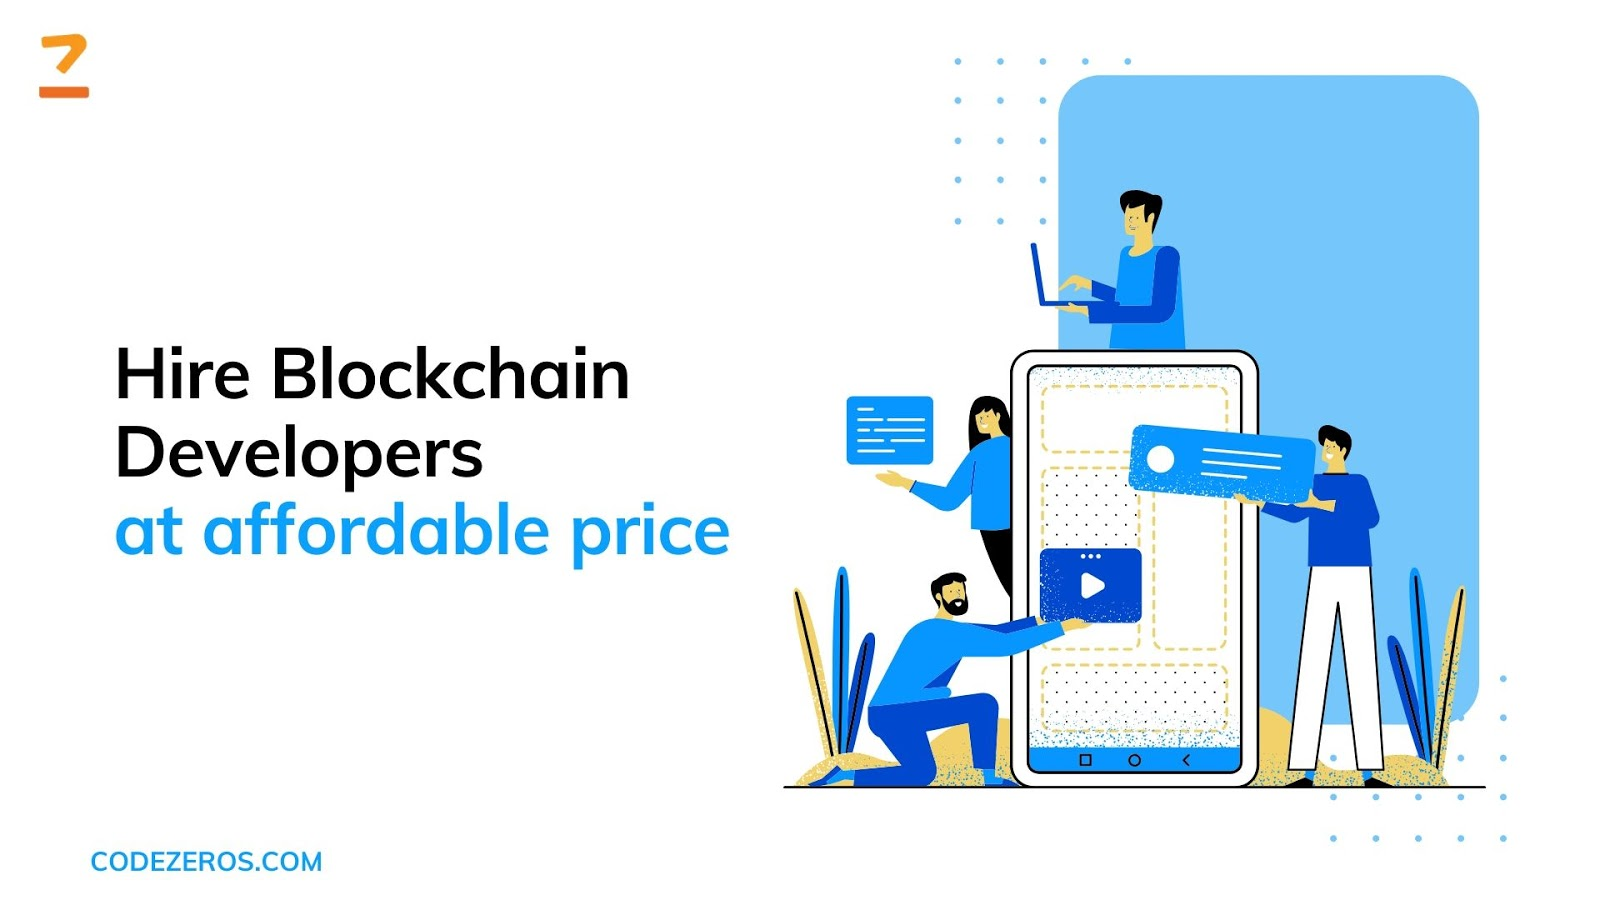 Hire Blockchain Developers at affordable price